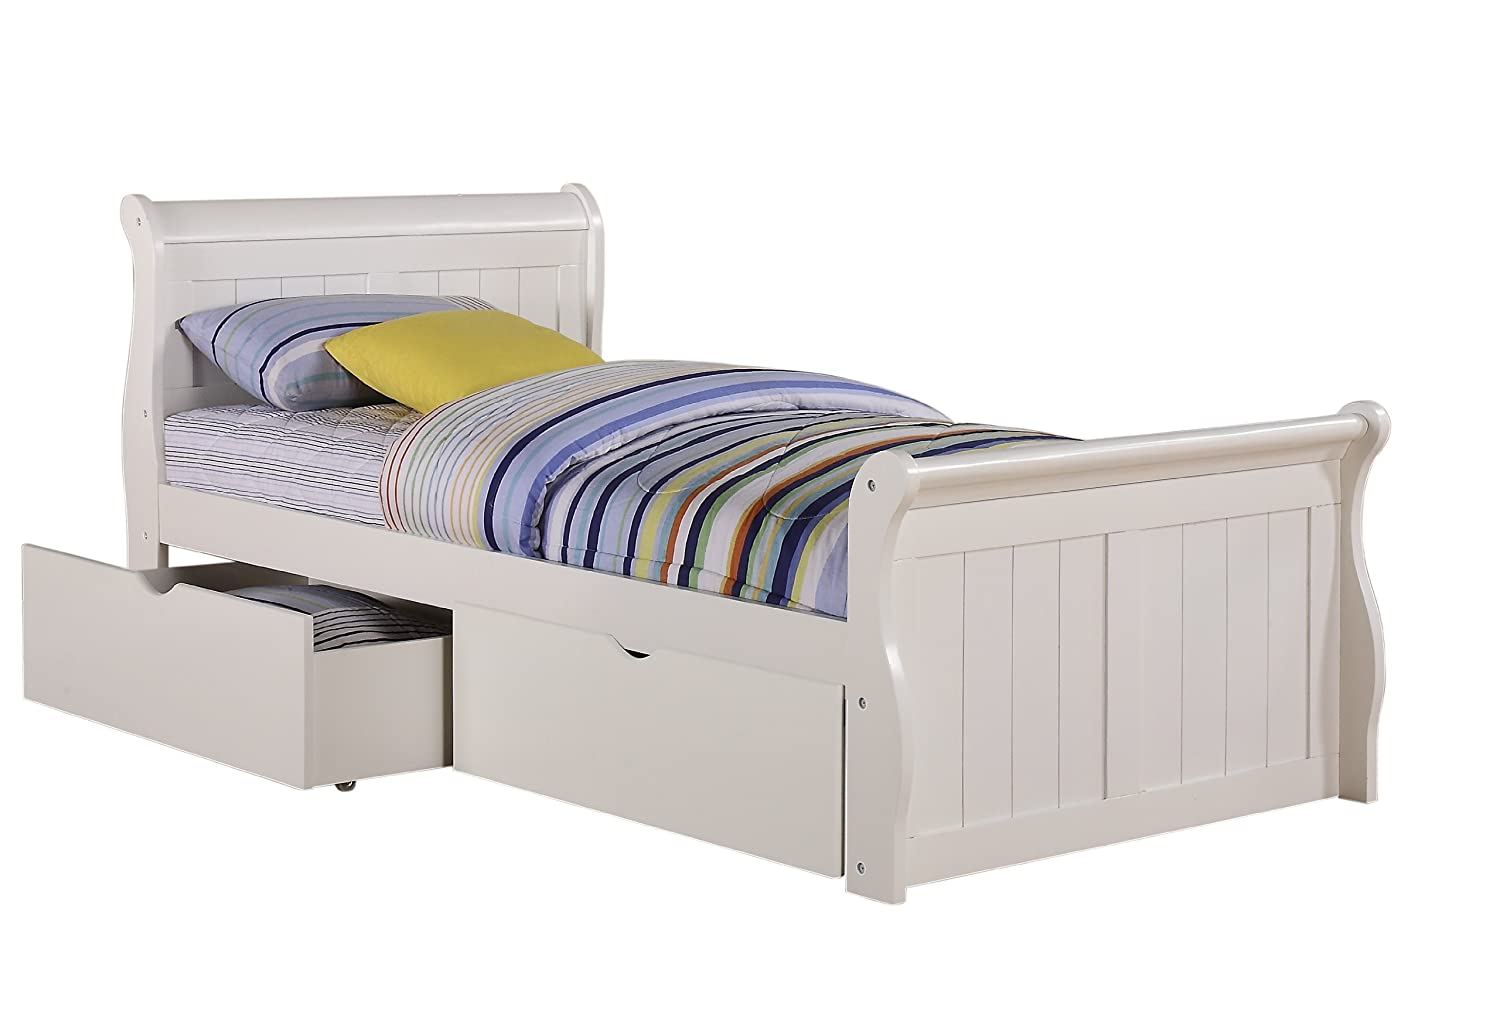 bed width cambridgequeen and cambridge sleigh height with queen icb threshold aspenhome egg usb drawers item trim storage b products